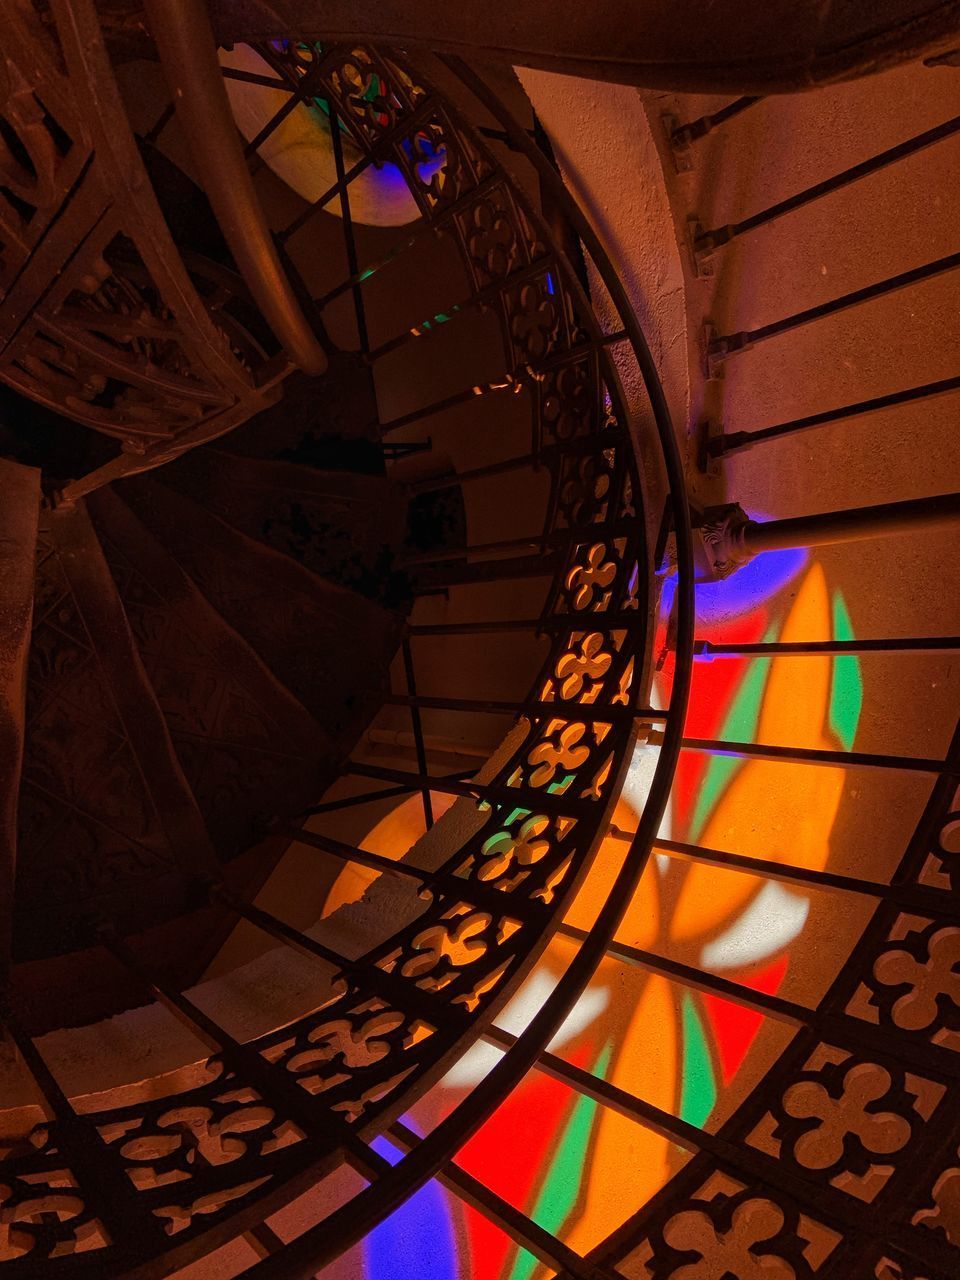 staircase, indoors, steps and staircases, pattern, architecture, spiral, spiral staircase, design, high angle view, no people, railing, multi colored, built structure, flooring, illuminated, shape, geometric shape, tile, building, tiled floor